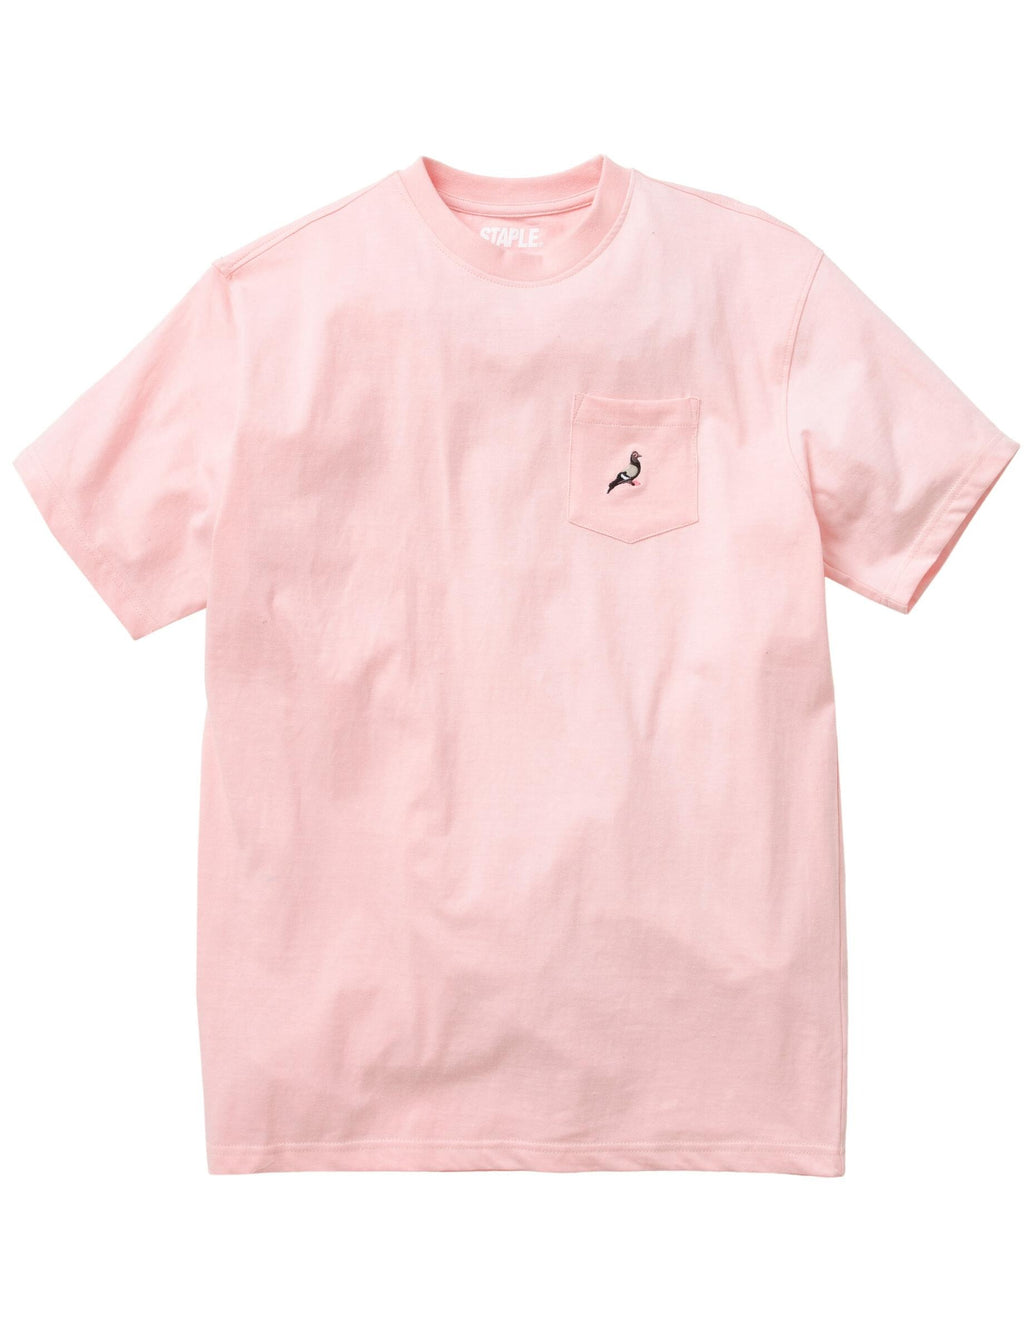 Garment Wash Pocket Tee - Tee | Staple Pigeon